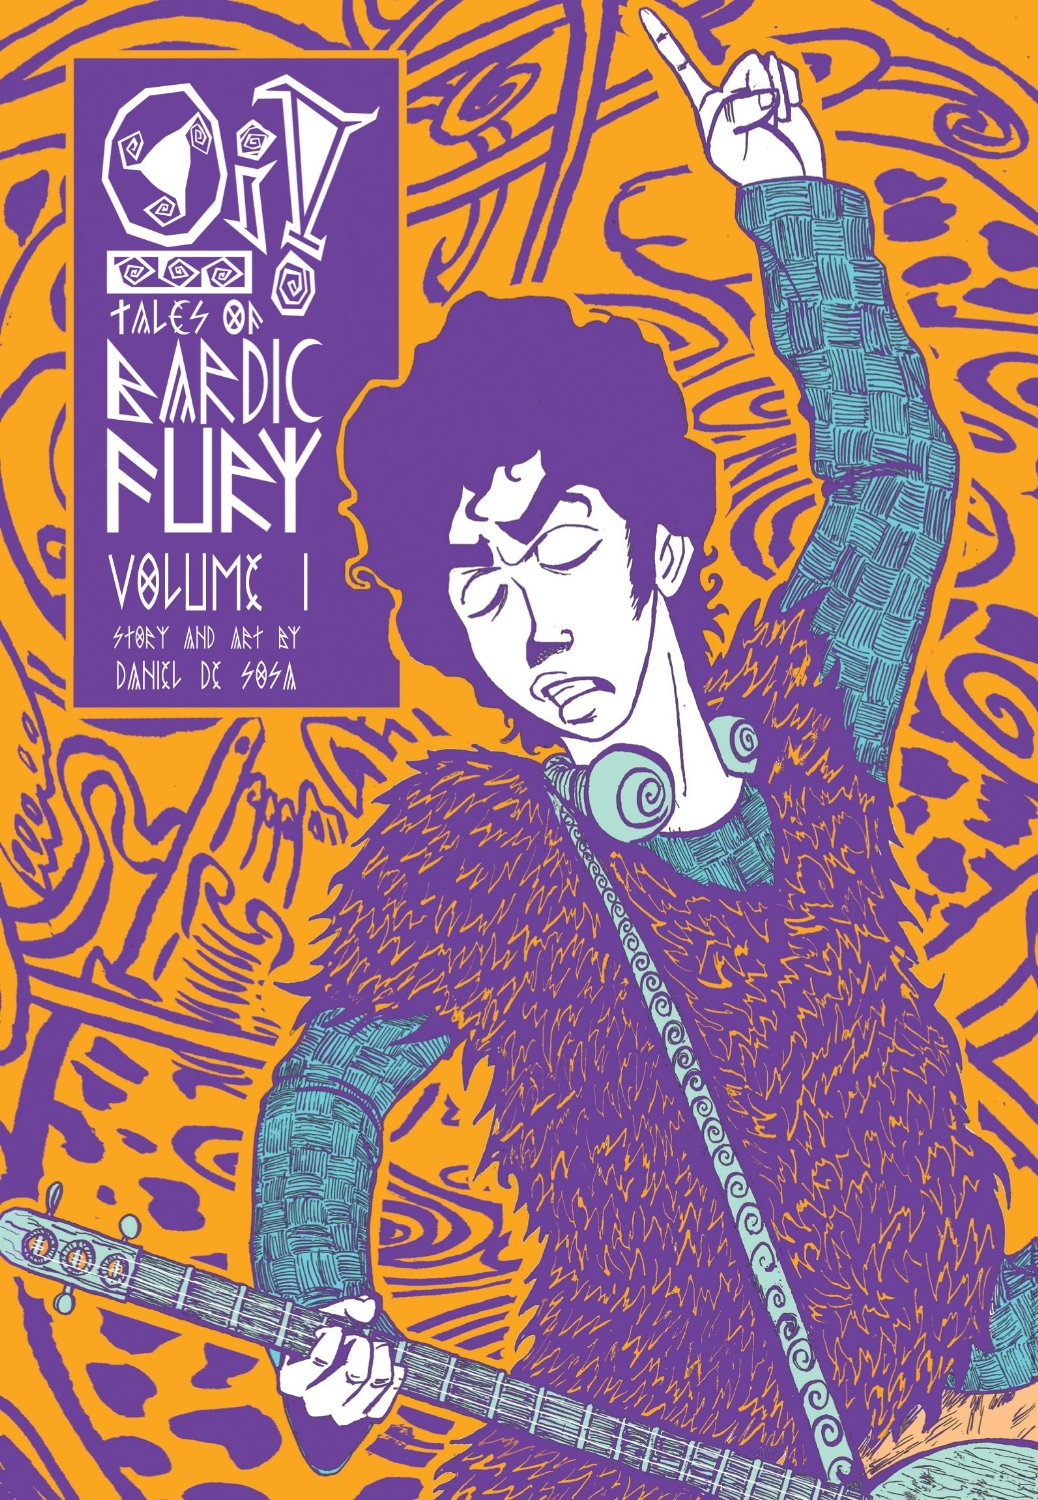 Oi!: Tales of Bardic Fury Volume One - Cover